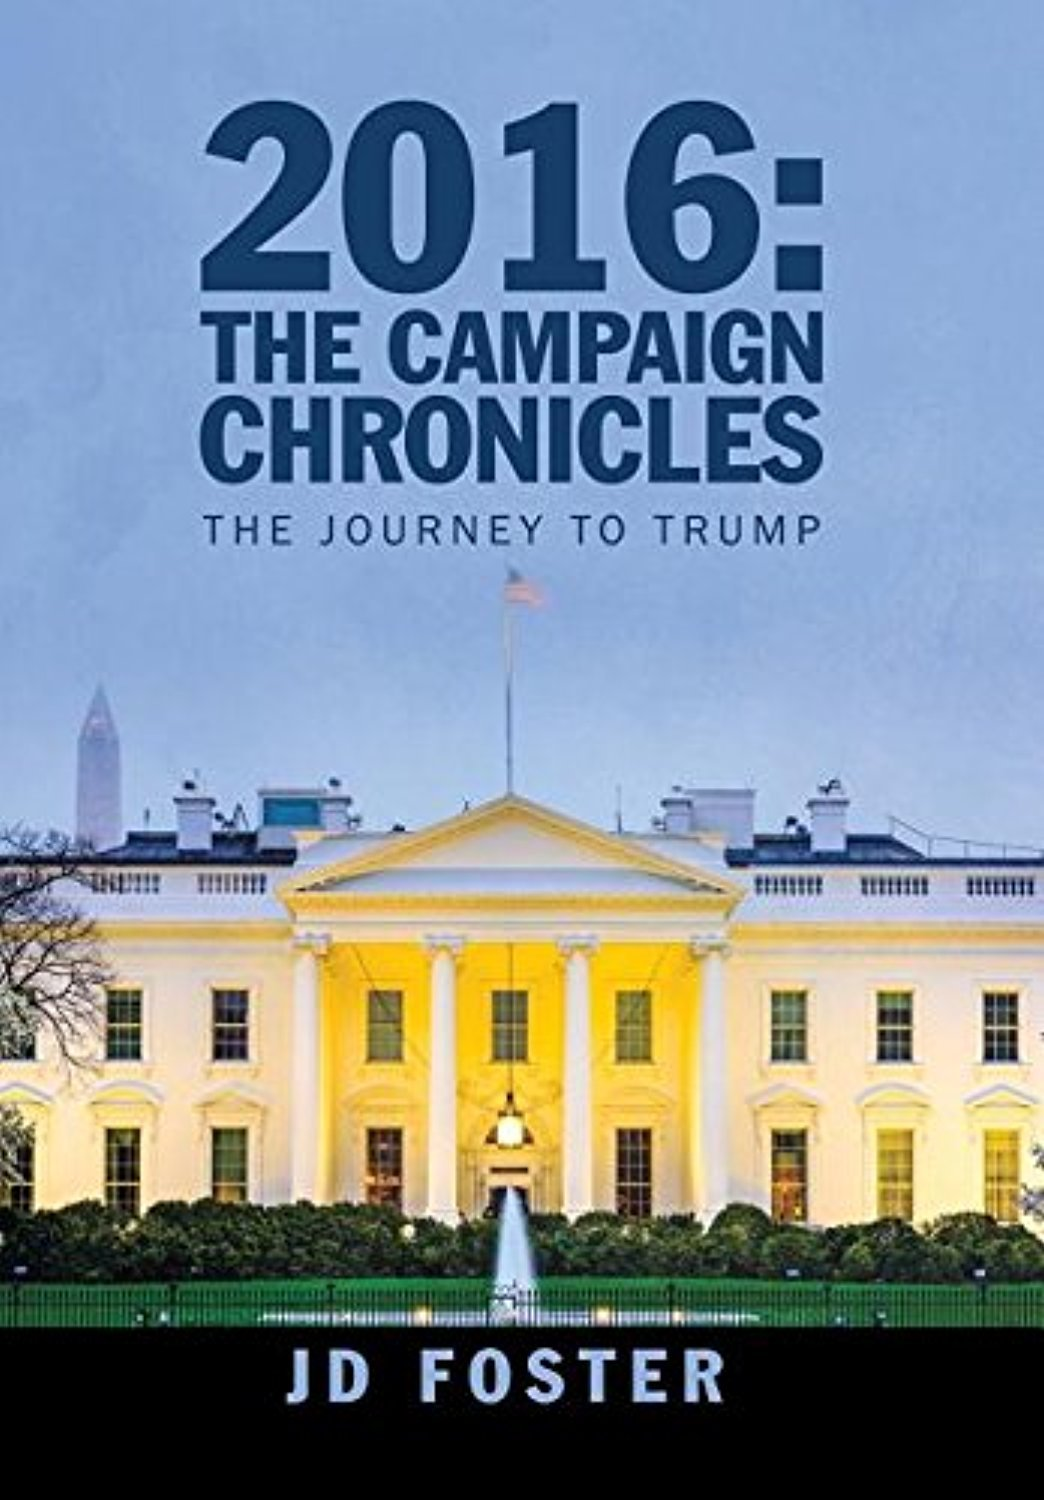 2016: The Campaign Chronicles: The Journey to Trump